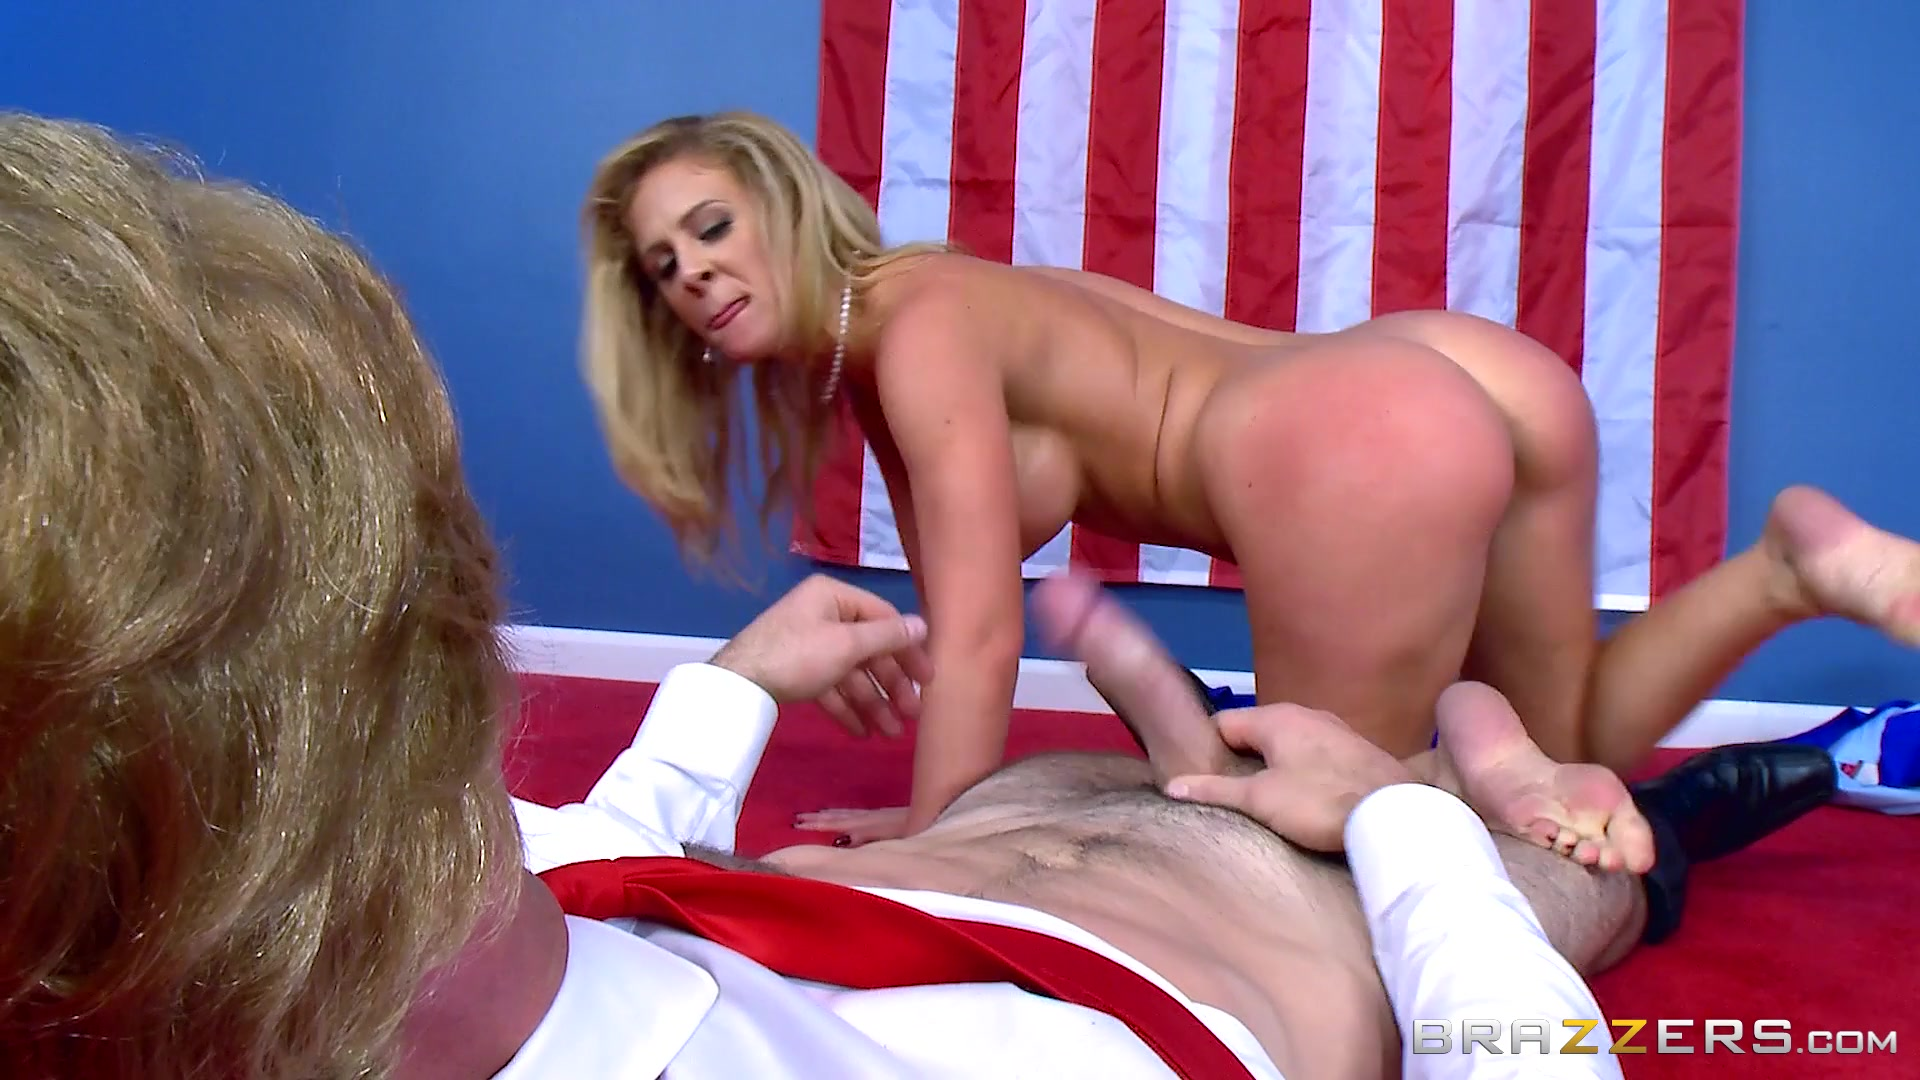 Download brazzers videos free rica